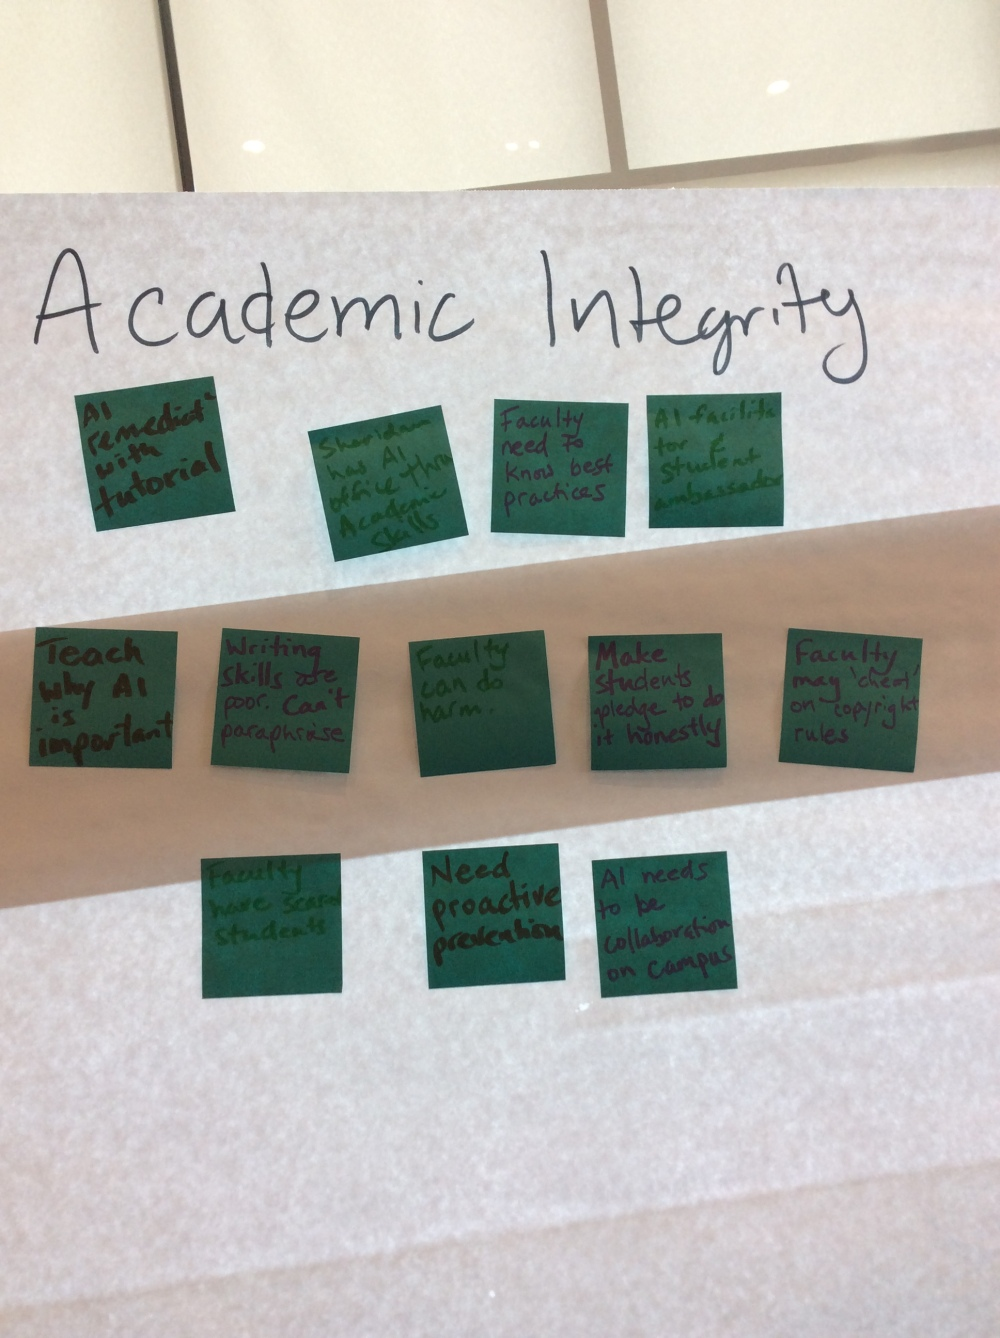 Academic Integrity discussion.